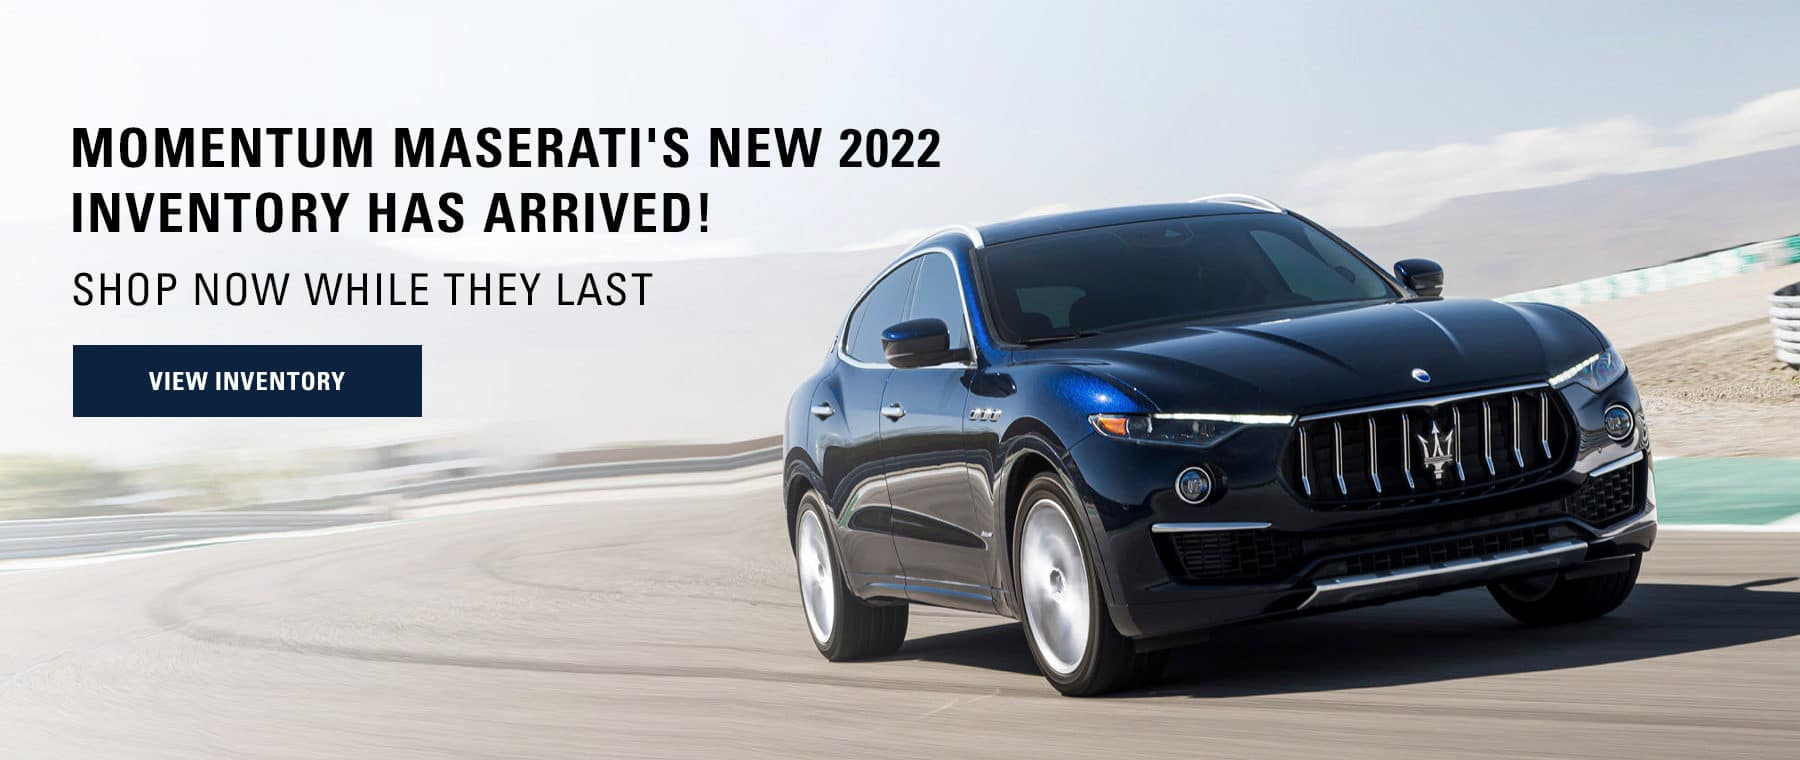 Momentum Maserati's New 2022 Inventory Has Arrived! Shop Now While They Last